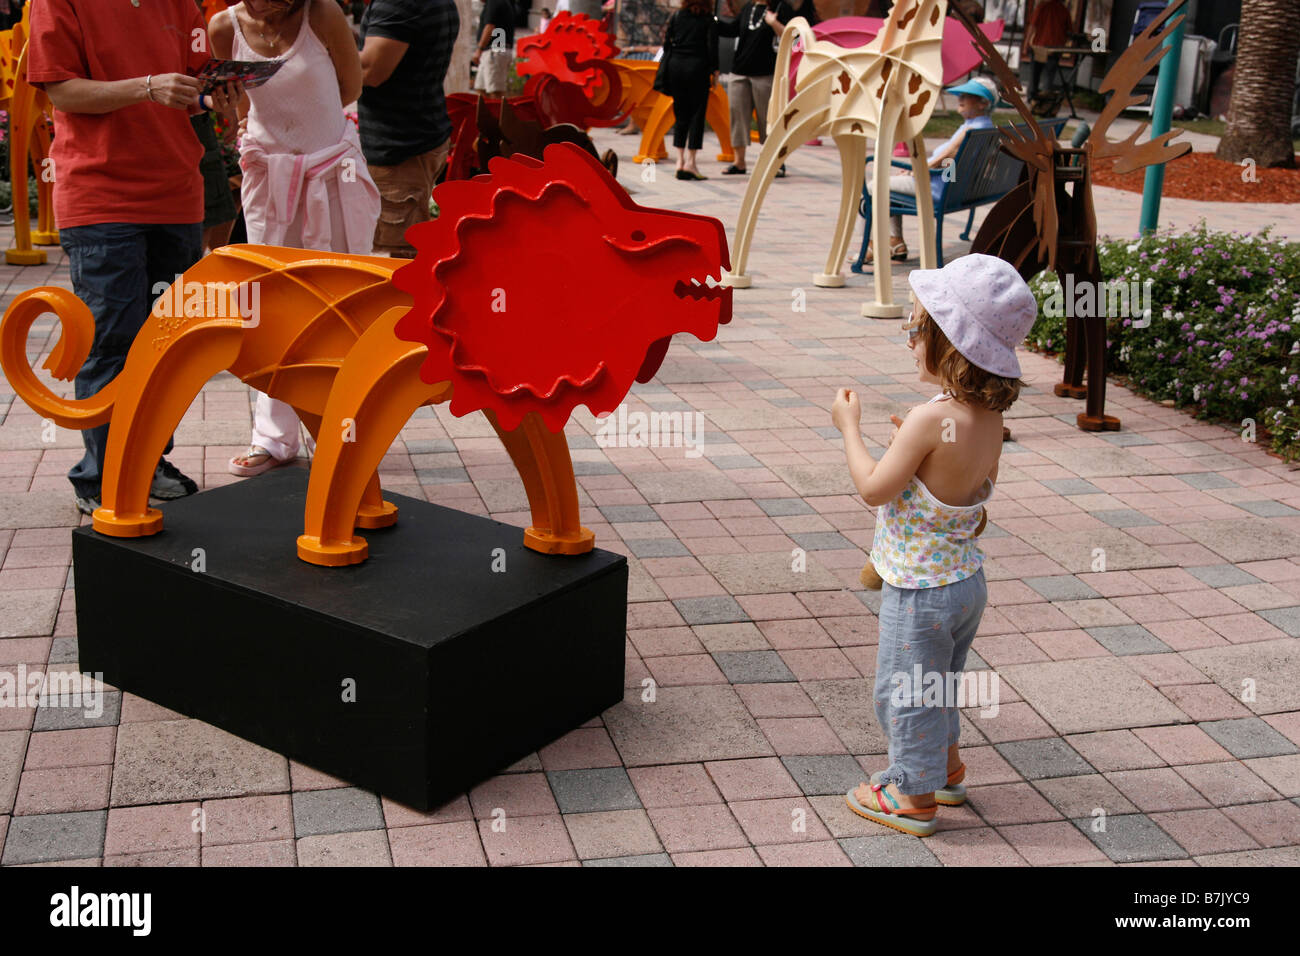 Young girl 4-6 years old is curious and fascinated by a sculpture of a metal lion. Stock Photo